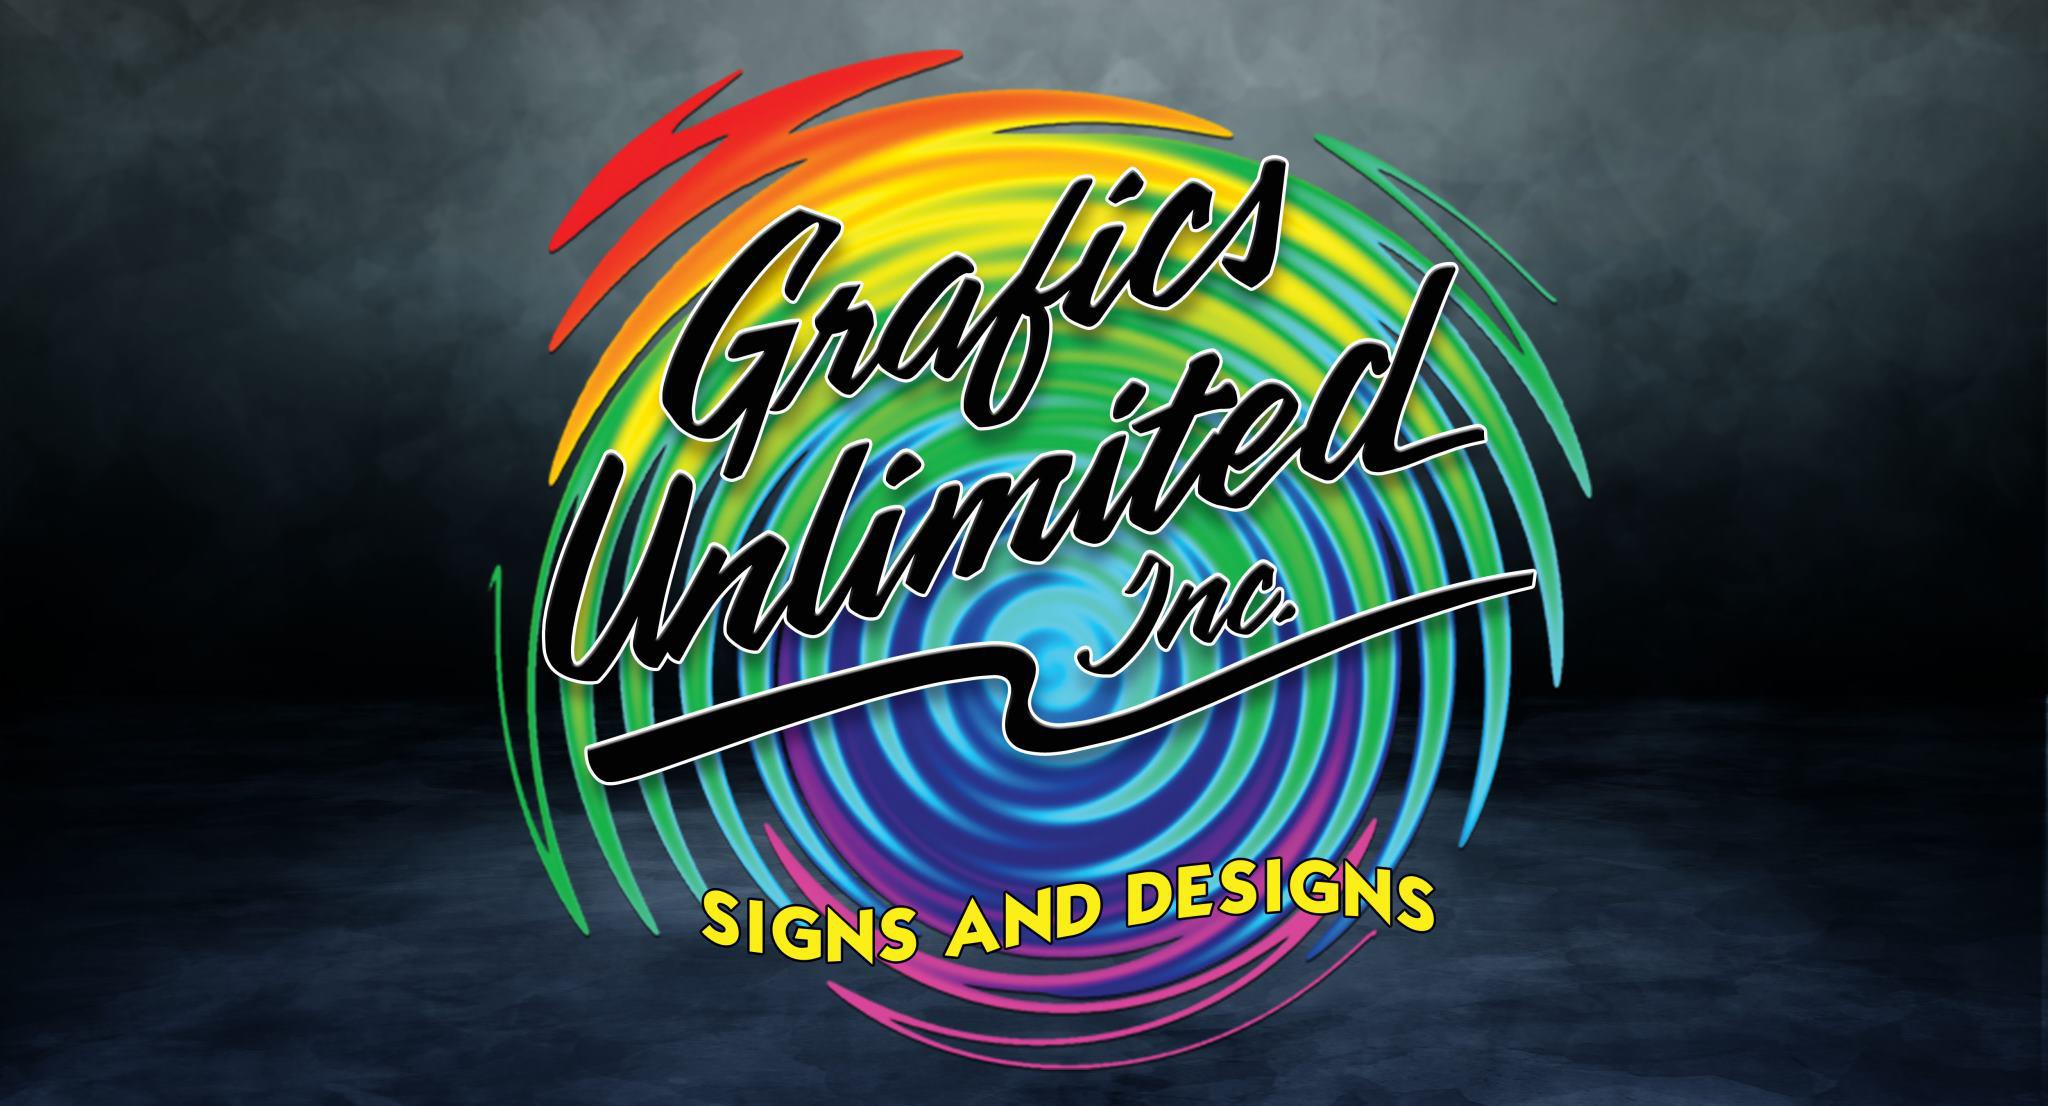 Grafics unlimited signs reno car wraps reno banners